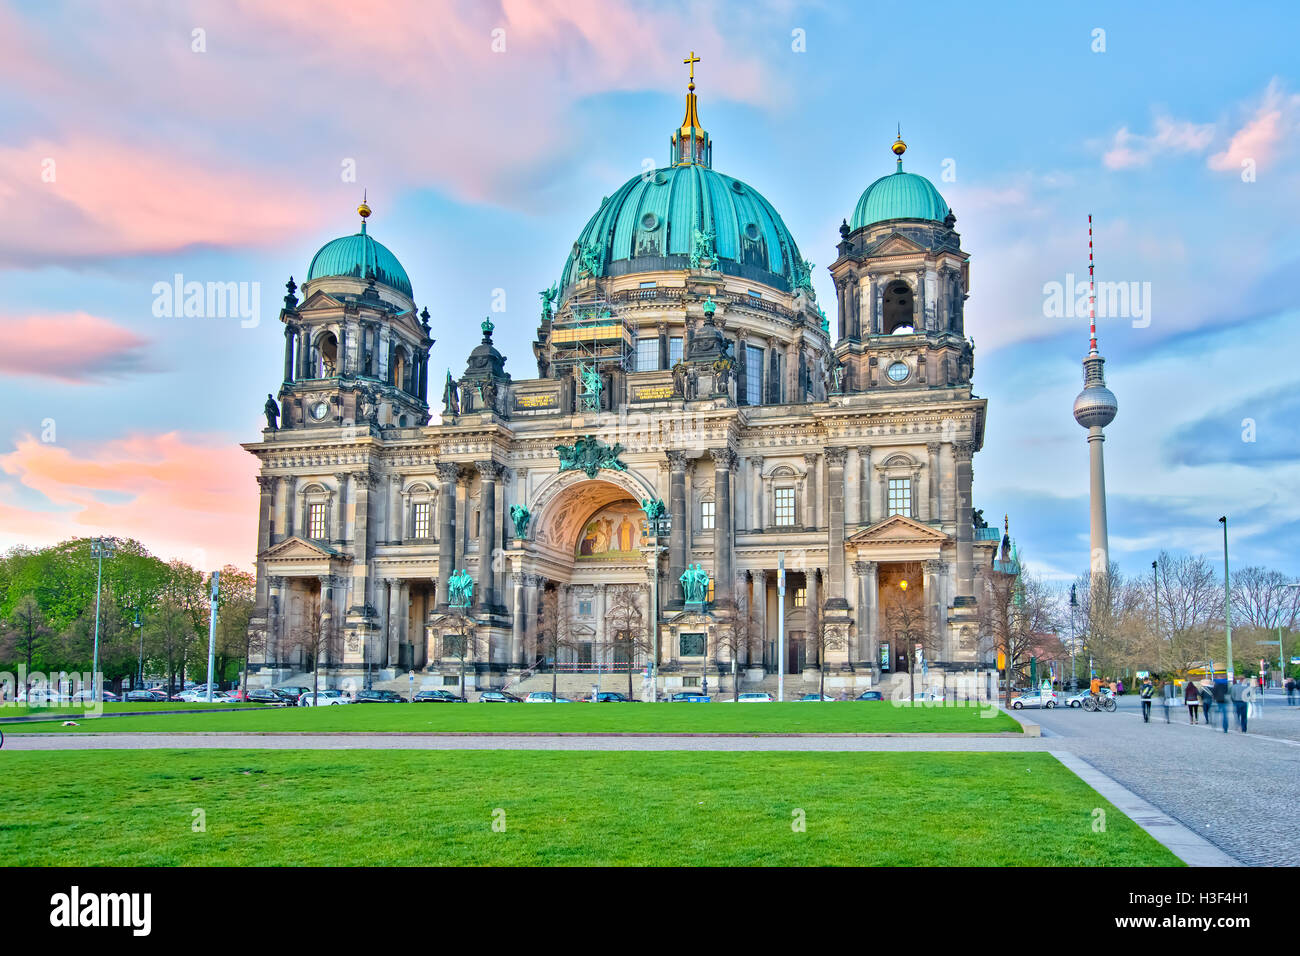 Berliner Dom at night in Berlin, Germany. - Stock Image